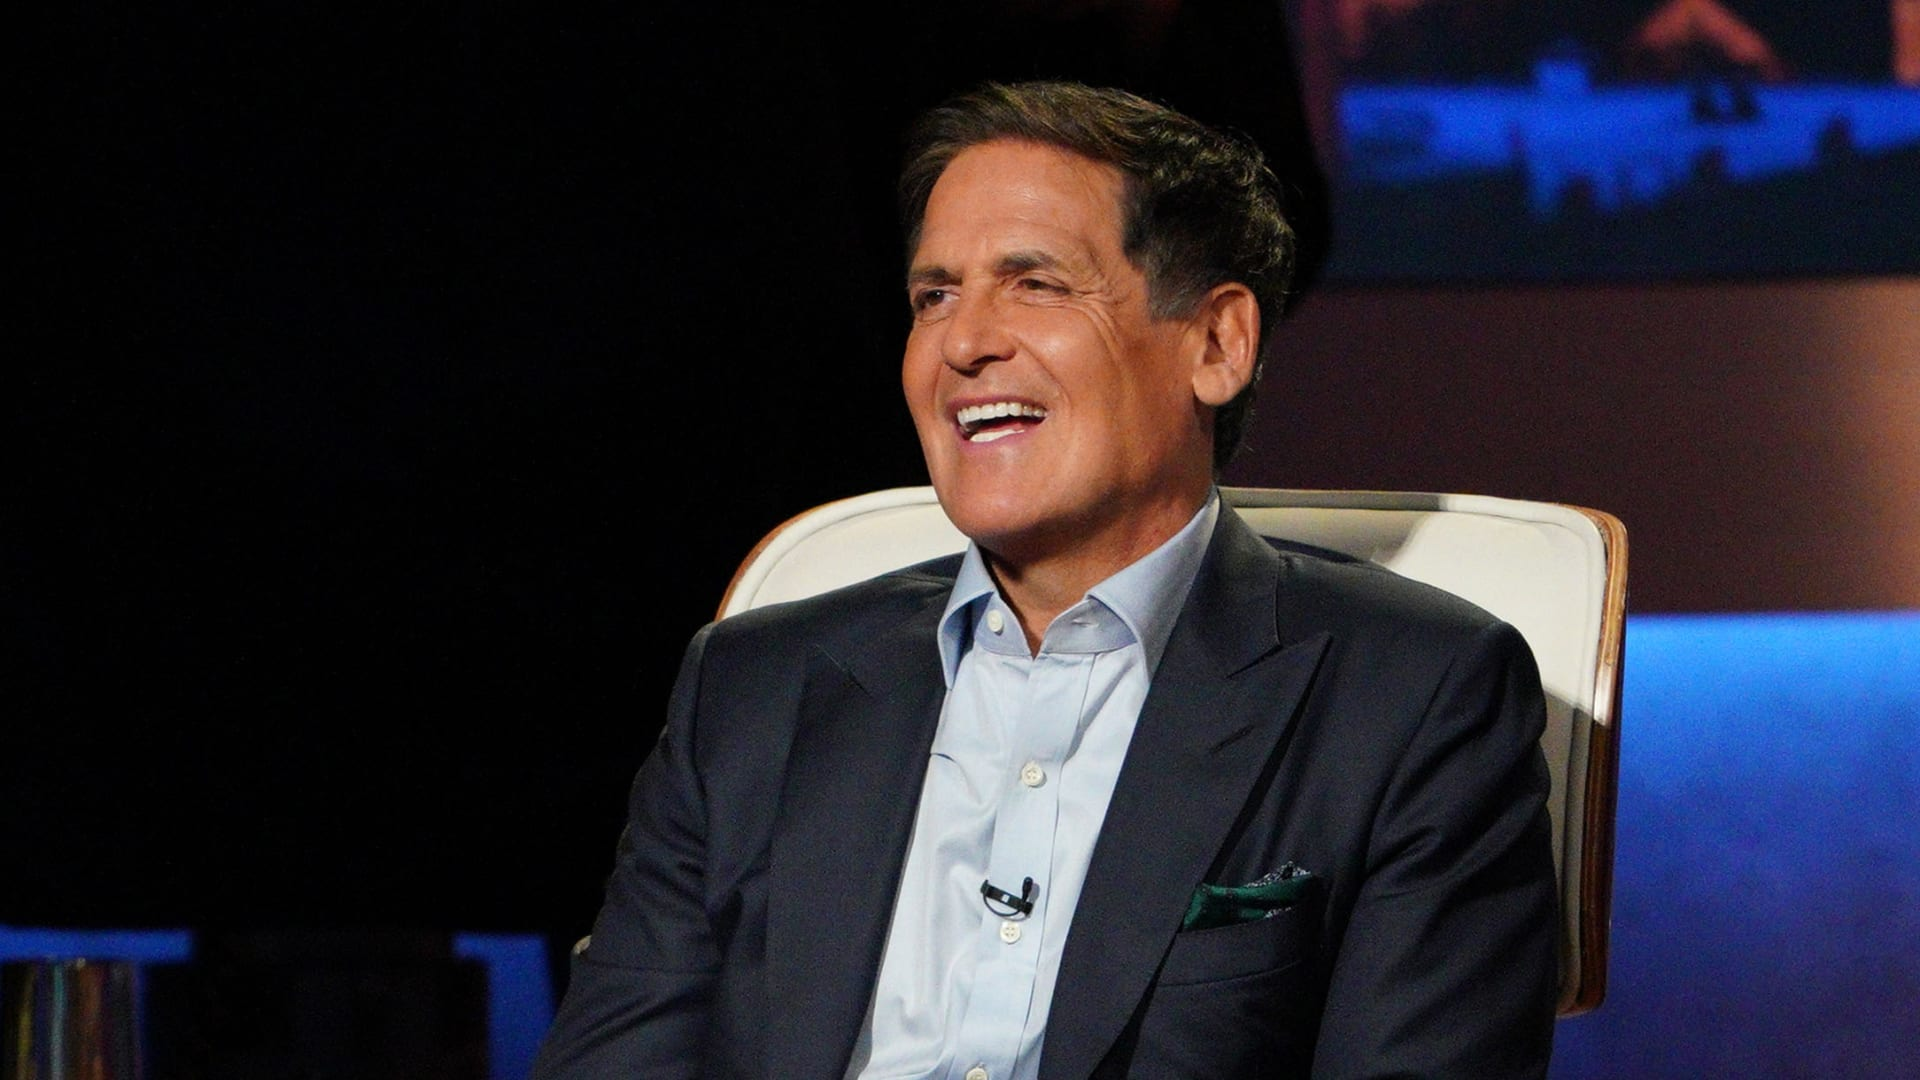 3 Things Mark Cuban Looks For in a Startup and Why He Invested in Human Ashes